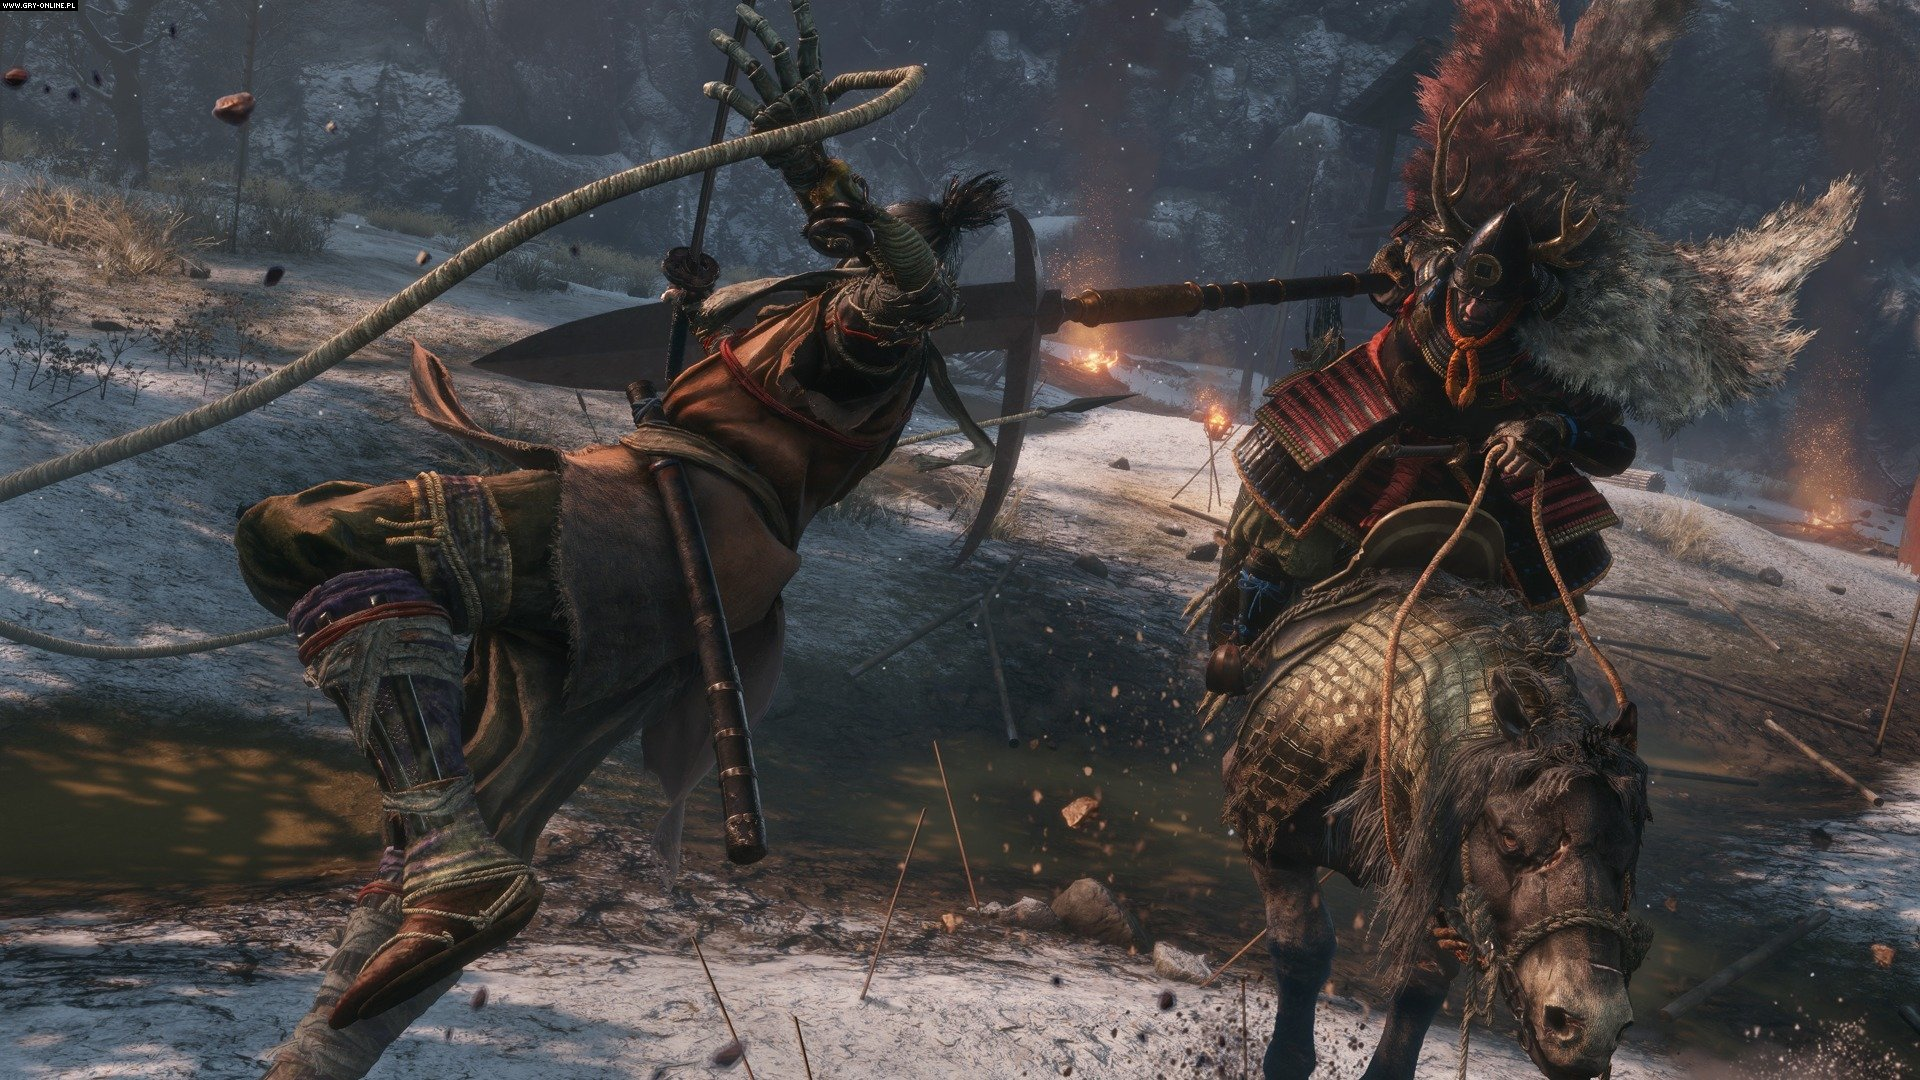 Sekiro: Shadows Die Twice PC, PS4, XONE Games Image 3/29, FromSoftware, Activision Blizzard